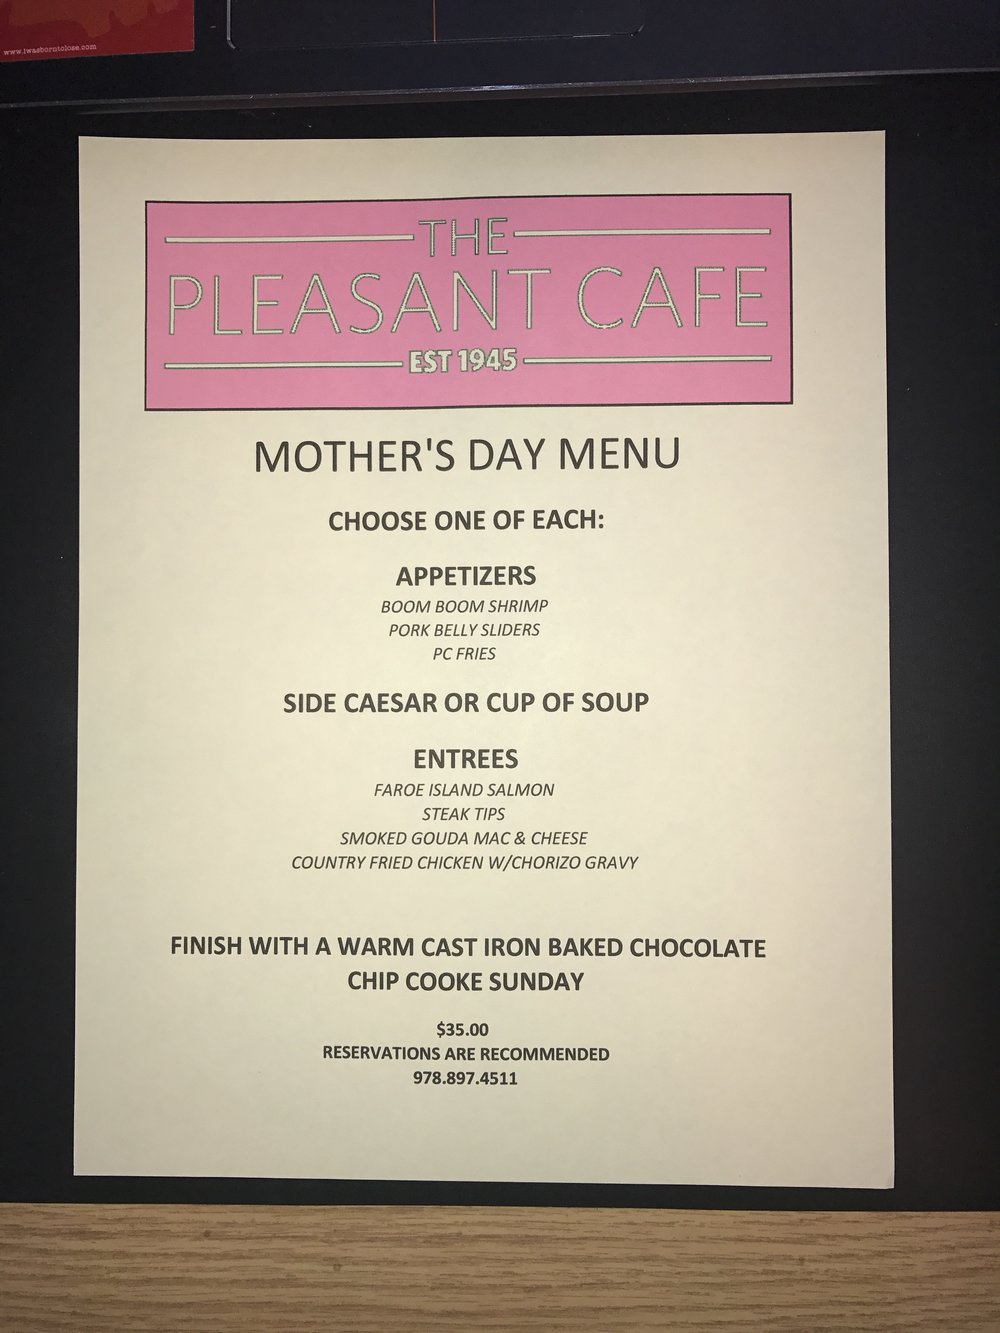 Don't forget about Mom Sunday. Reservations are recommended.